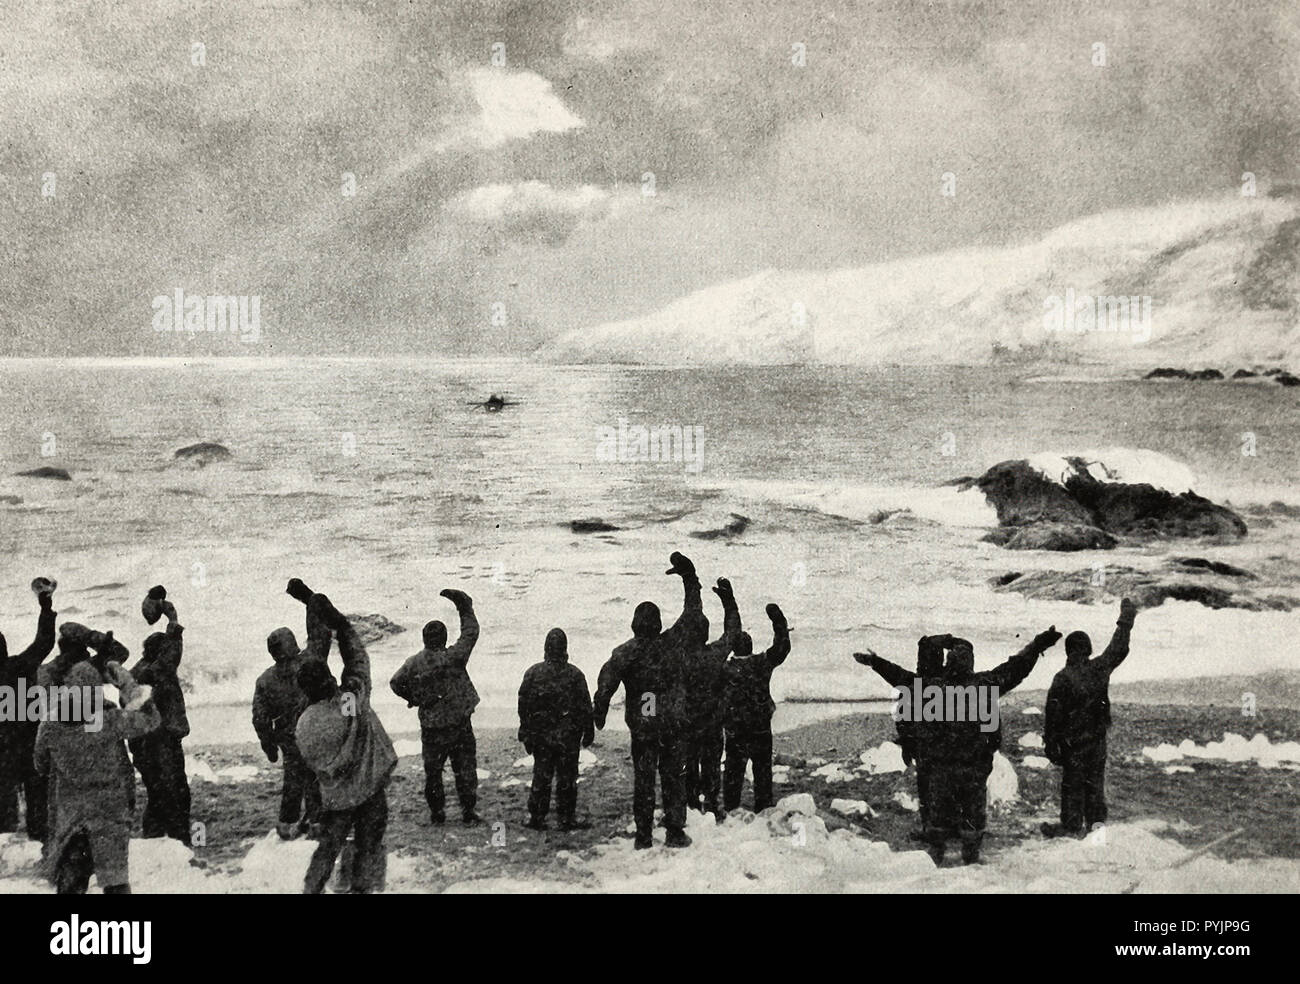 The Chilean Trawler Yelcho dropped a boat which headed for shore to pick up the survivors of the Shackleton Expedition - Stock Image